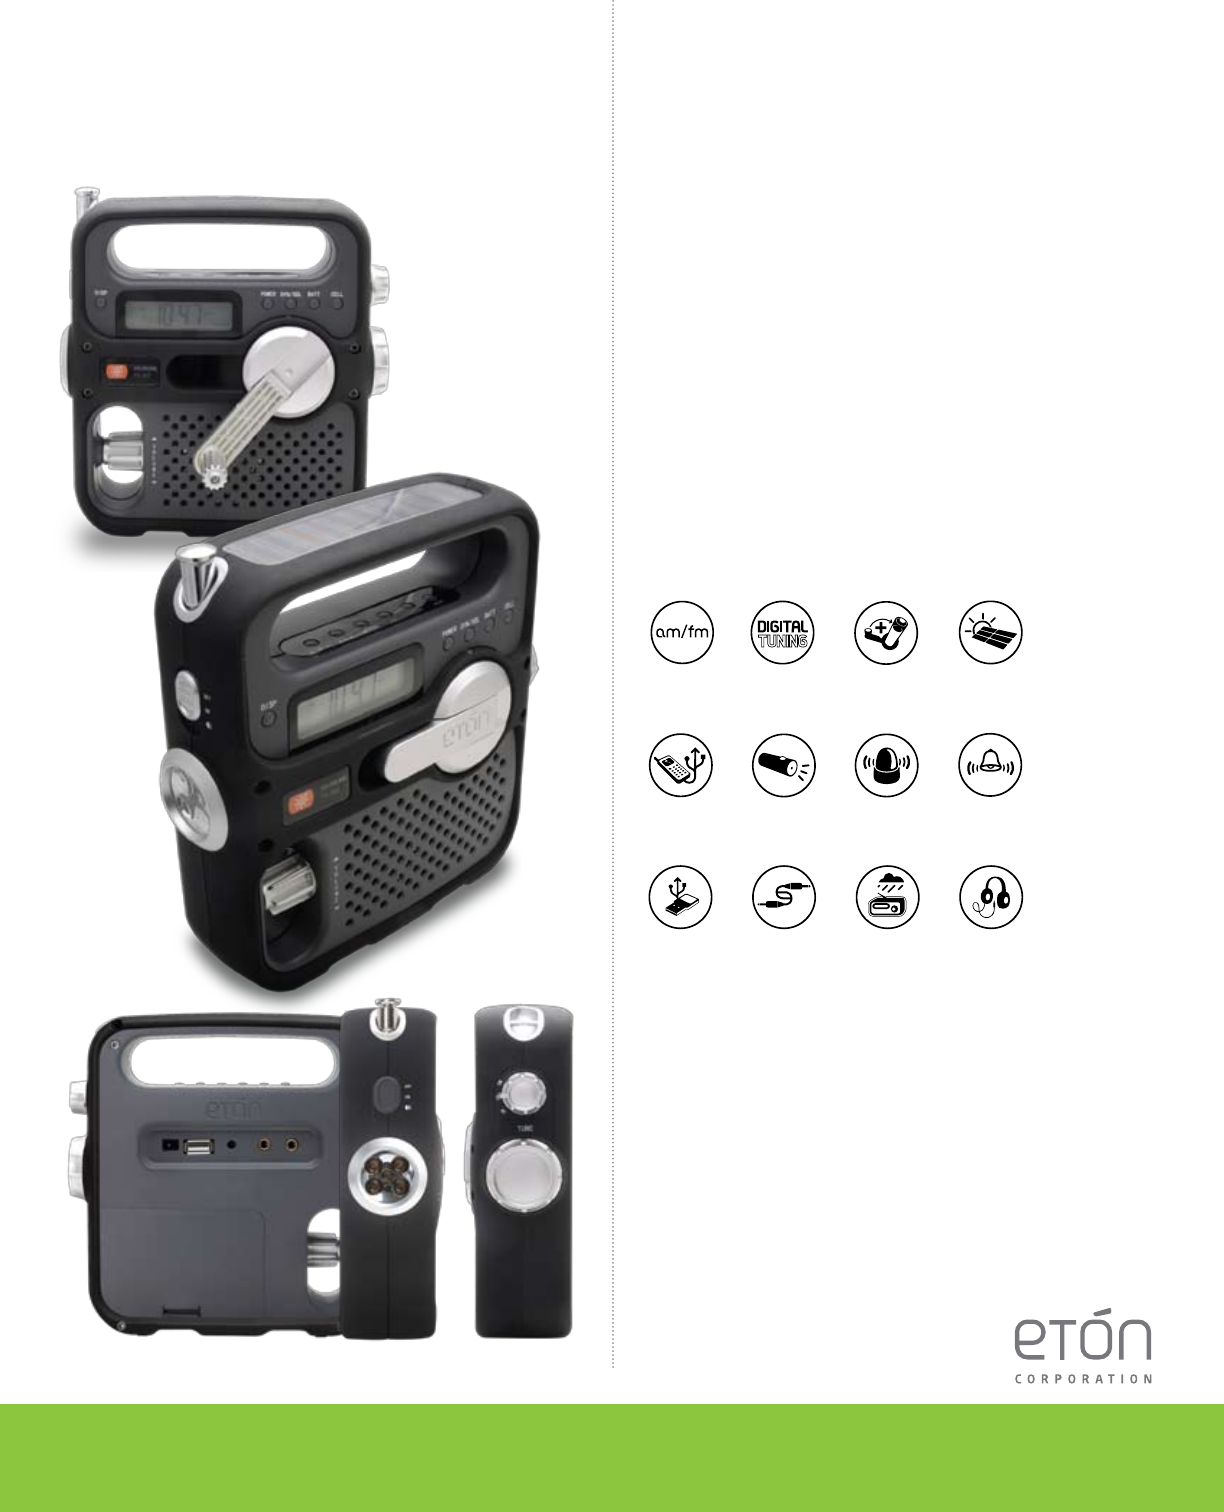 Eton FR360 Portable Radio User Manual